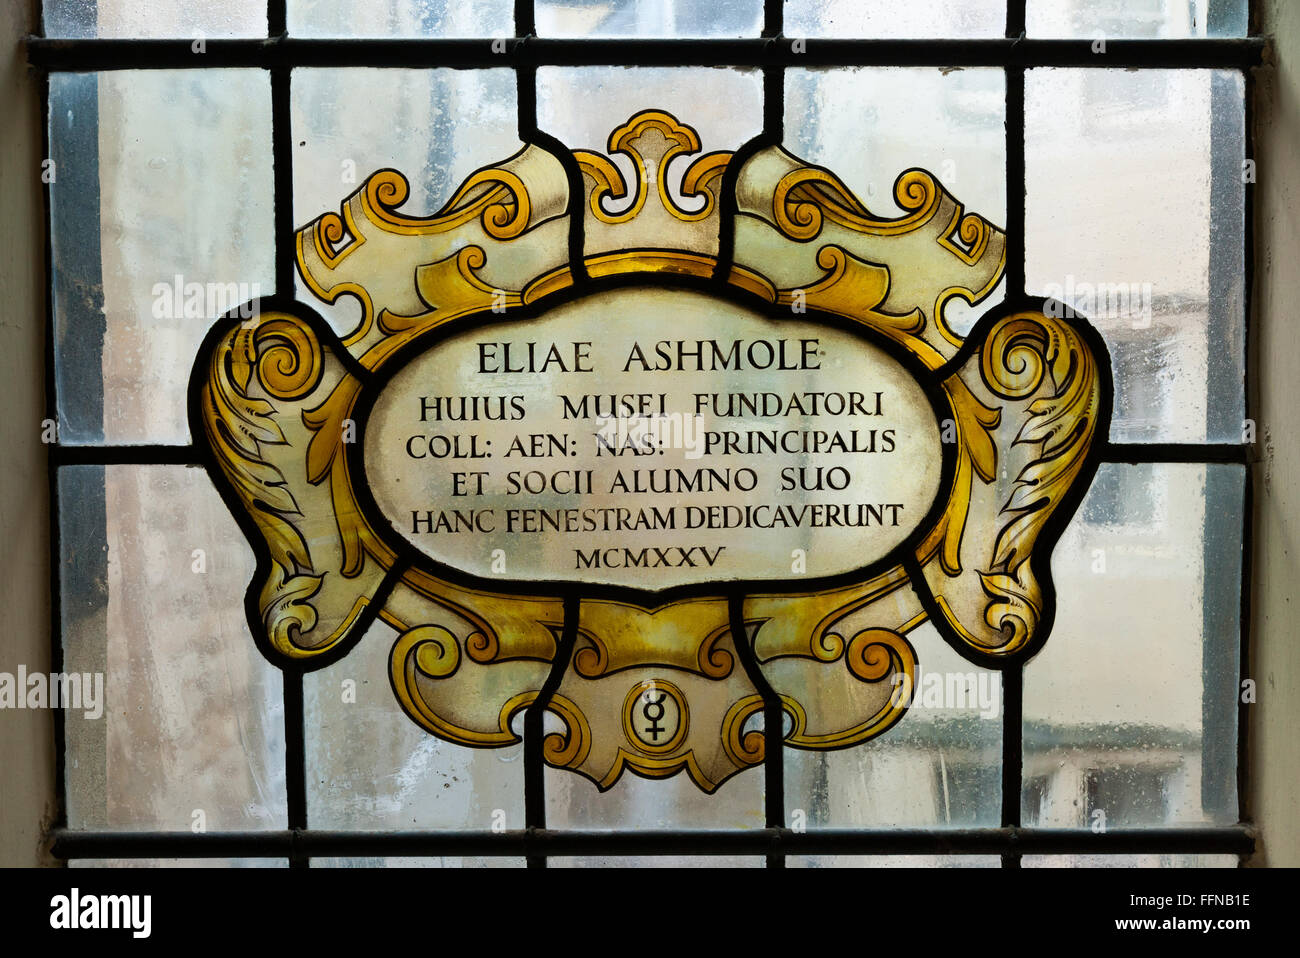 Founder 's – Elias Ashmole – stained glass window at Museum of the History of Science (The Old Ashmolean Building) - Stock Image